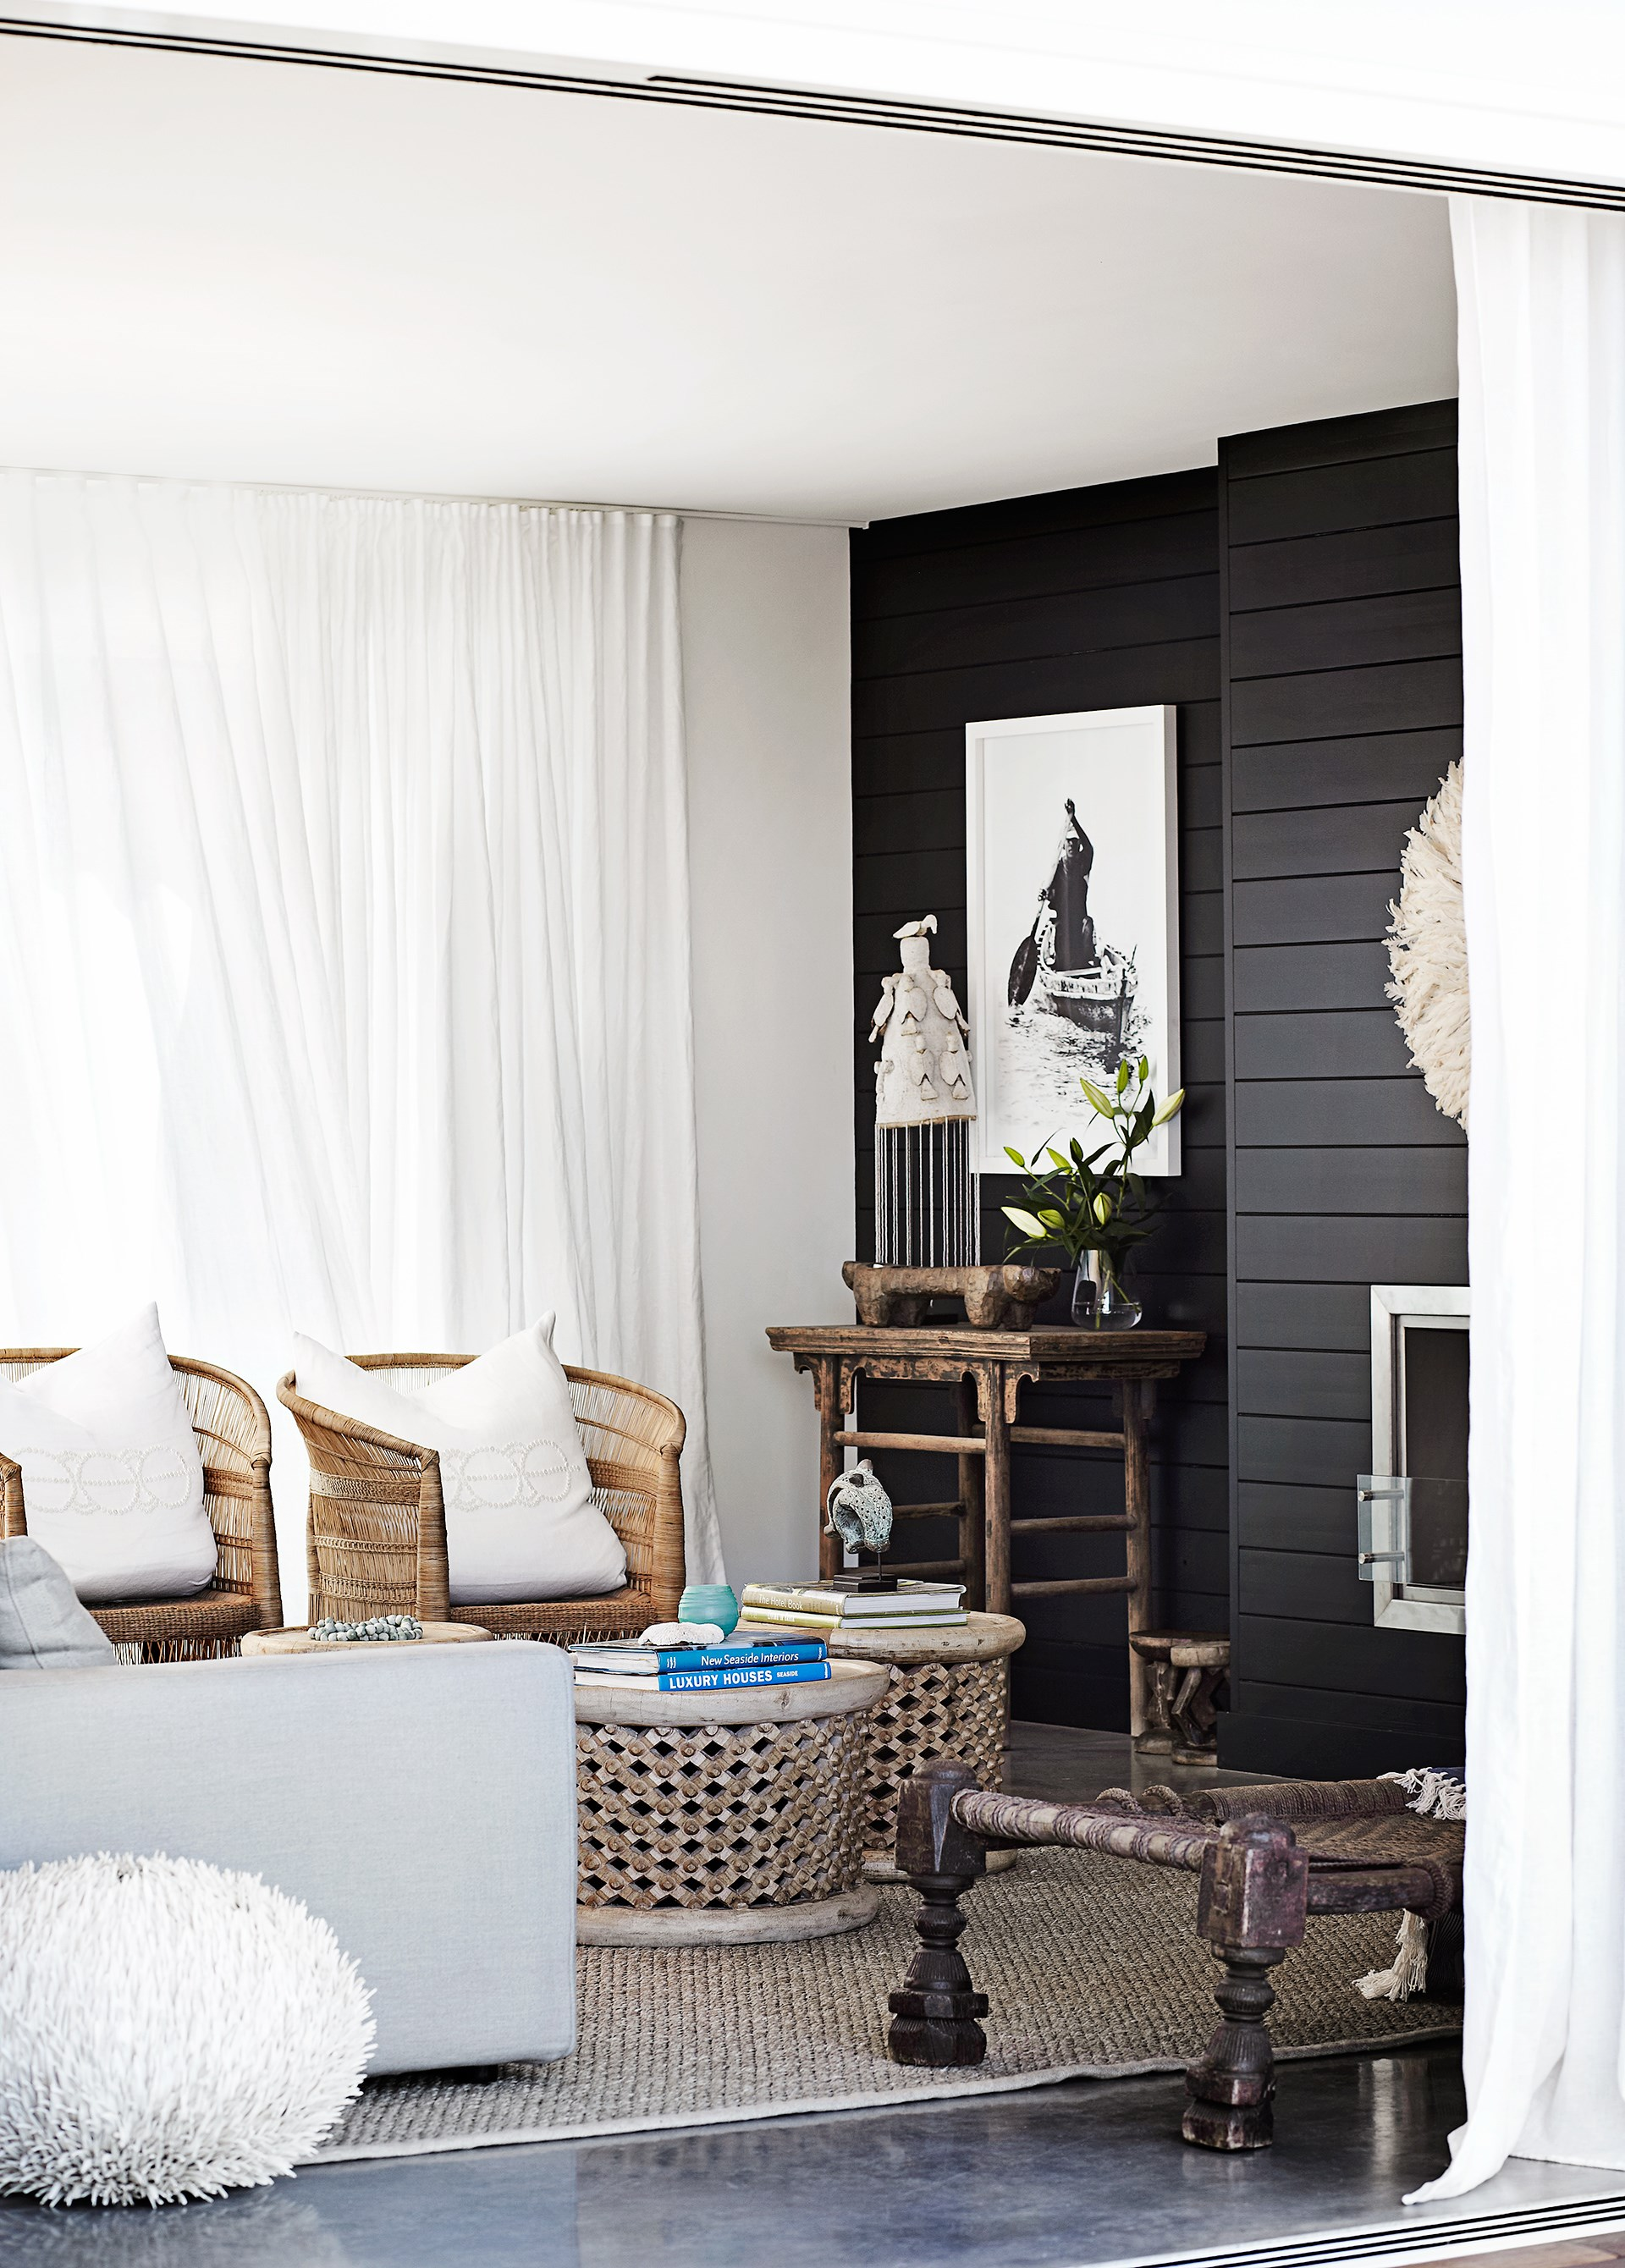 "Tribal and organic objects mix with rustic furniture and a coastal aesthetic in this global-inspired [weatherboard home](https://www.homestolove.com.au/weatherboard-home-with-wow-factor-3458|target=""_blank"") - the epitome of beachy boho style. *Photo:* Sharyn Cairns"